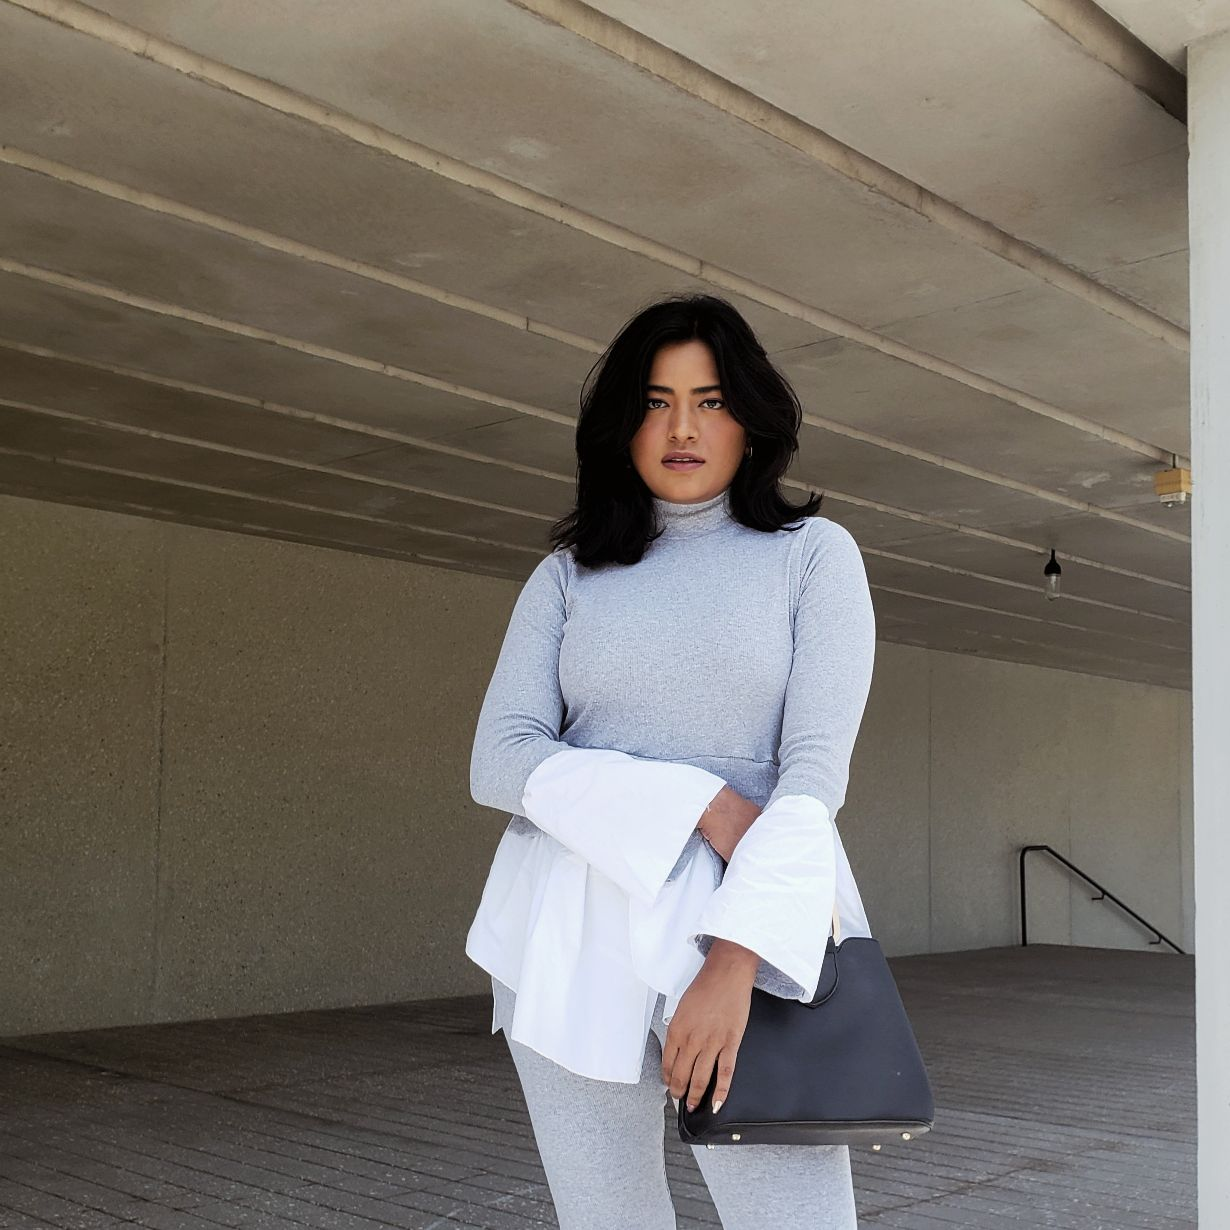 Afroza Khan wearing Grey Layered Look Jumper Shirt Loungewear Femme Luxe Finery Miami Style Blogger